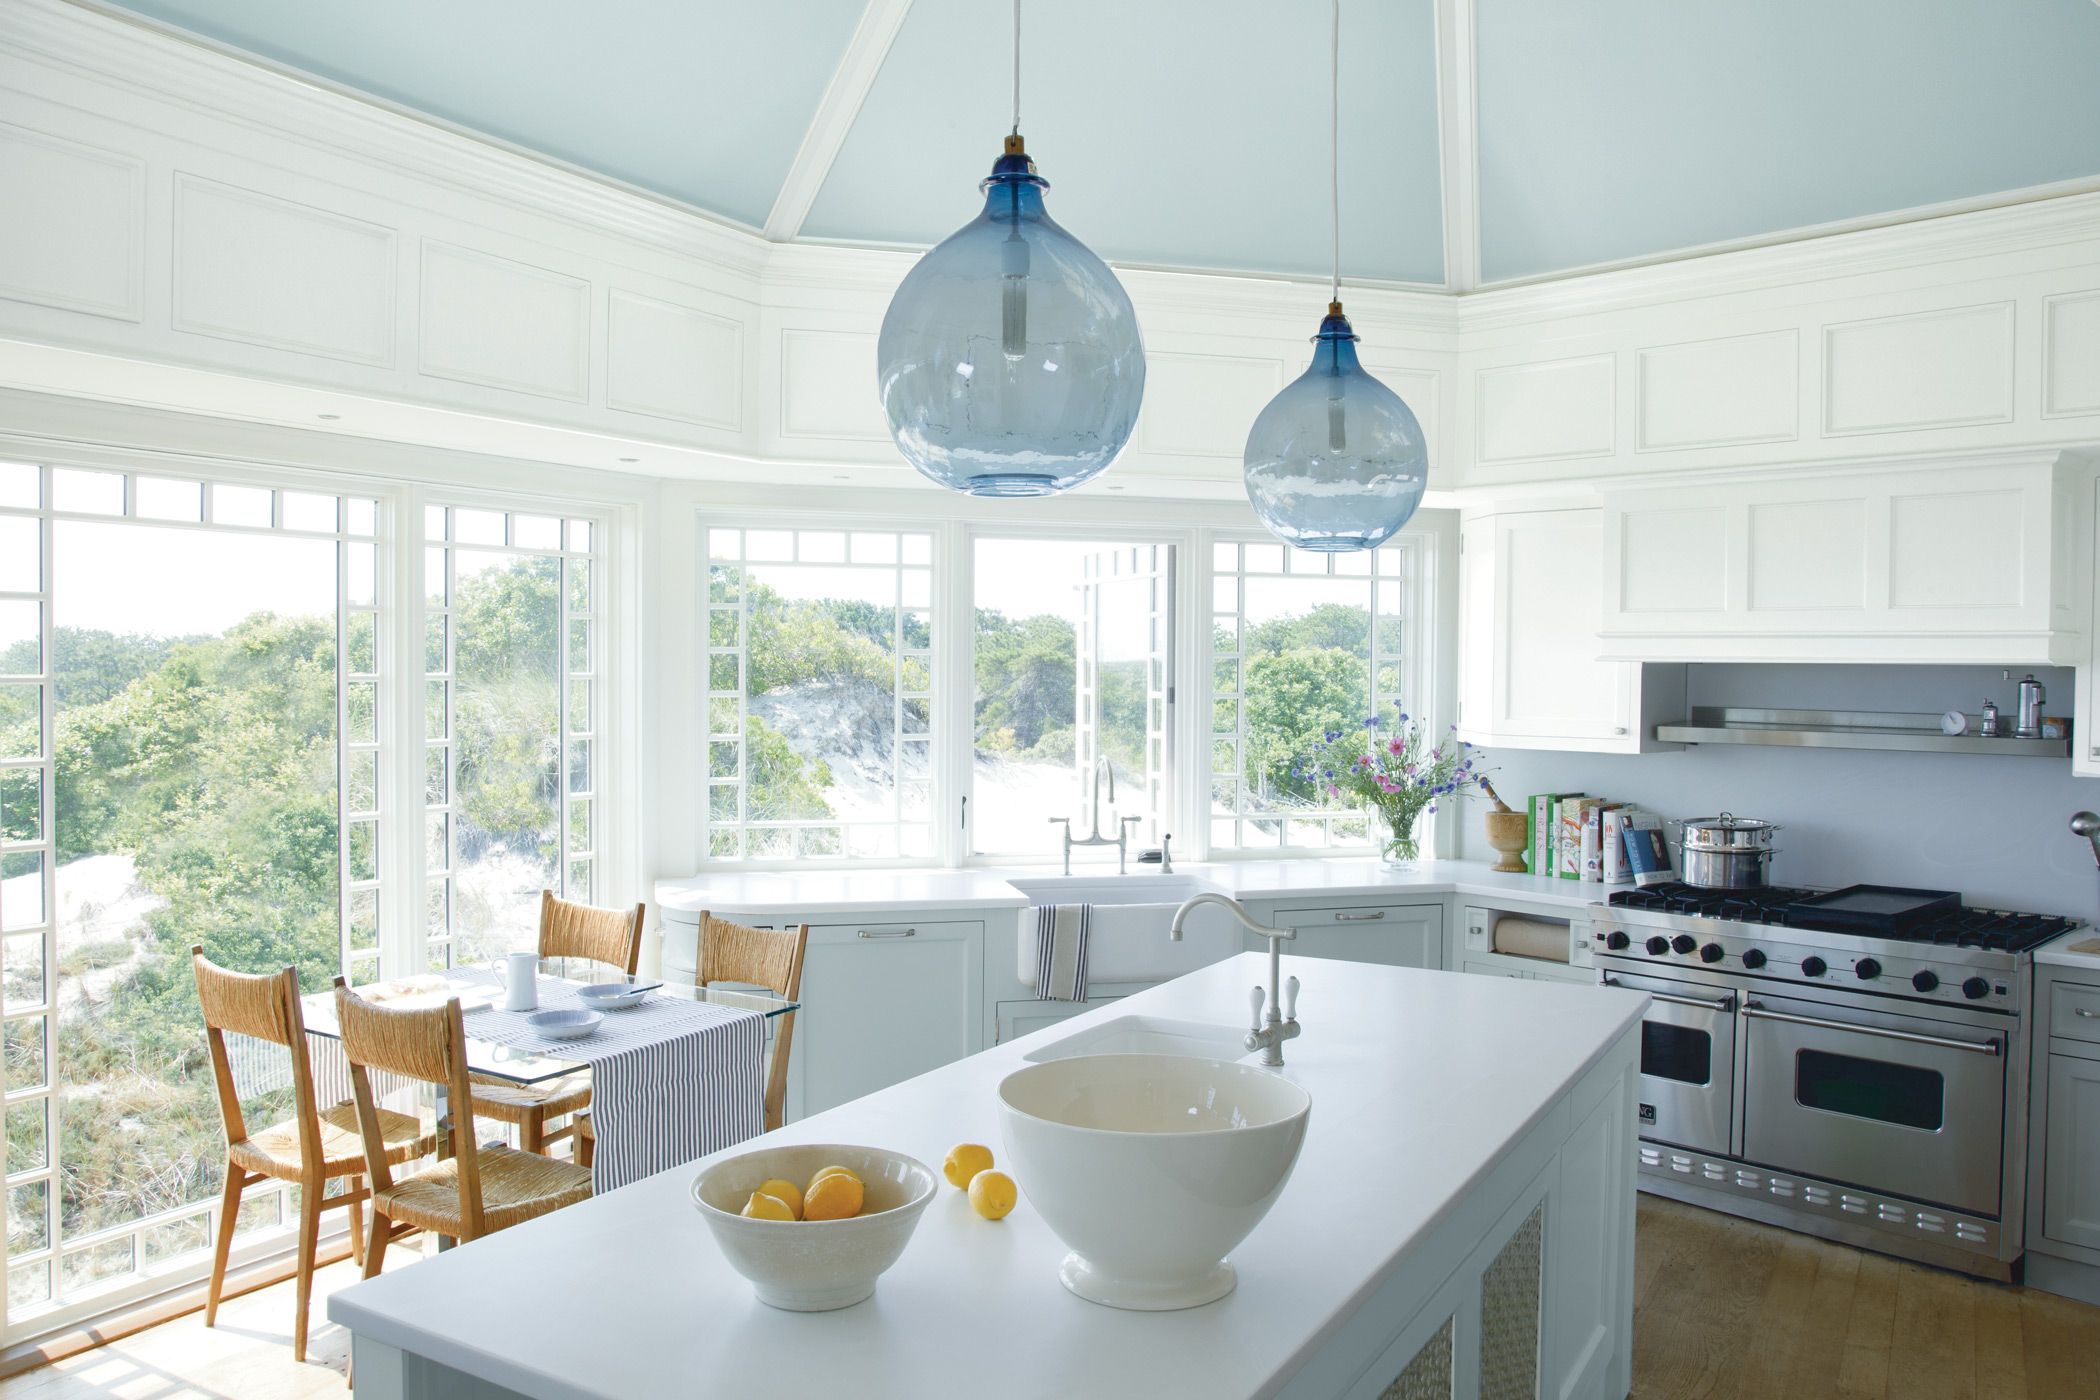 a bright and cheery kitchen with white walls and cabinets surrounding an island under big glass hanging lights